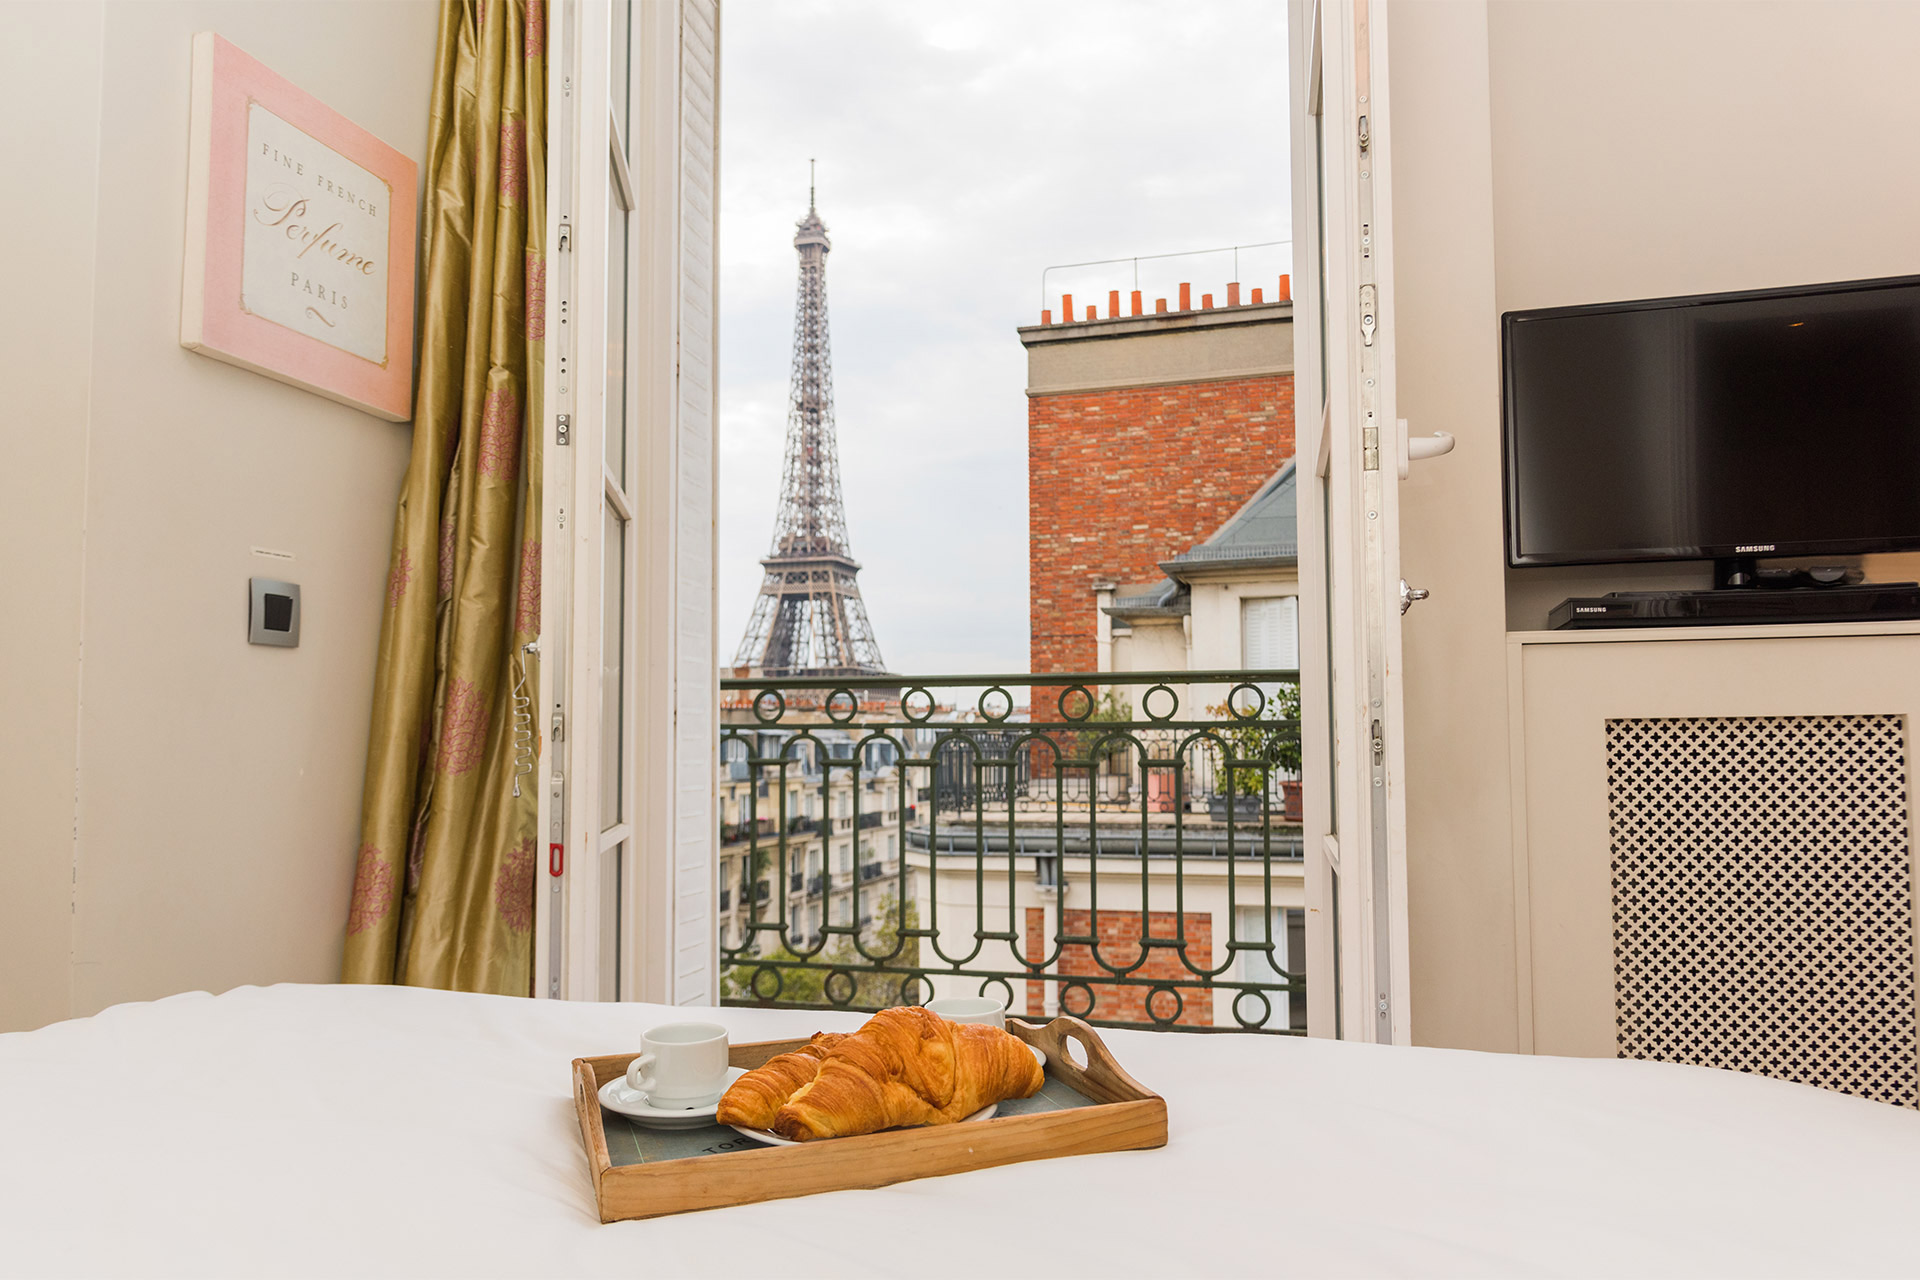 View of the Eiffel Tower from the bed in the Margaux vacation rental offered by Paris Perfect